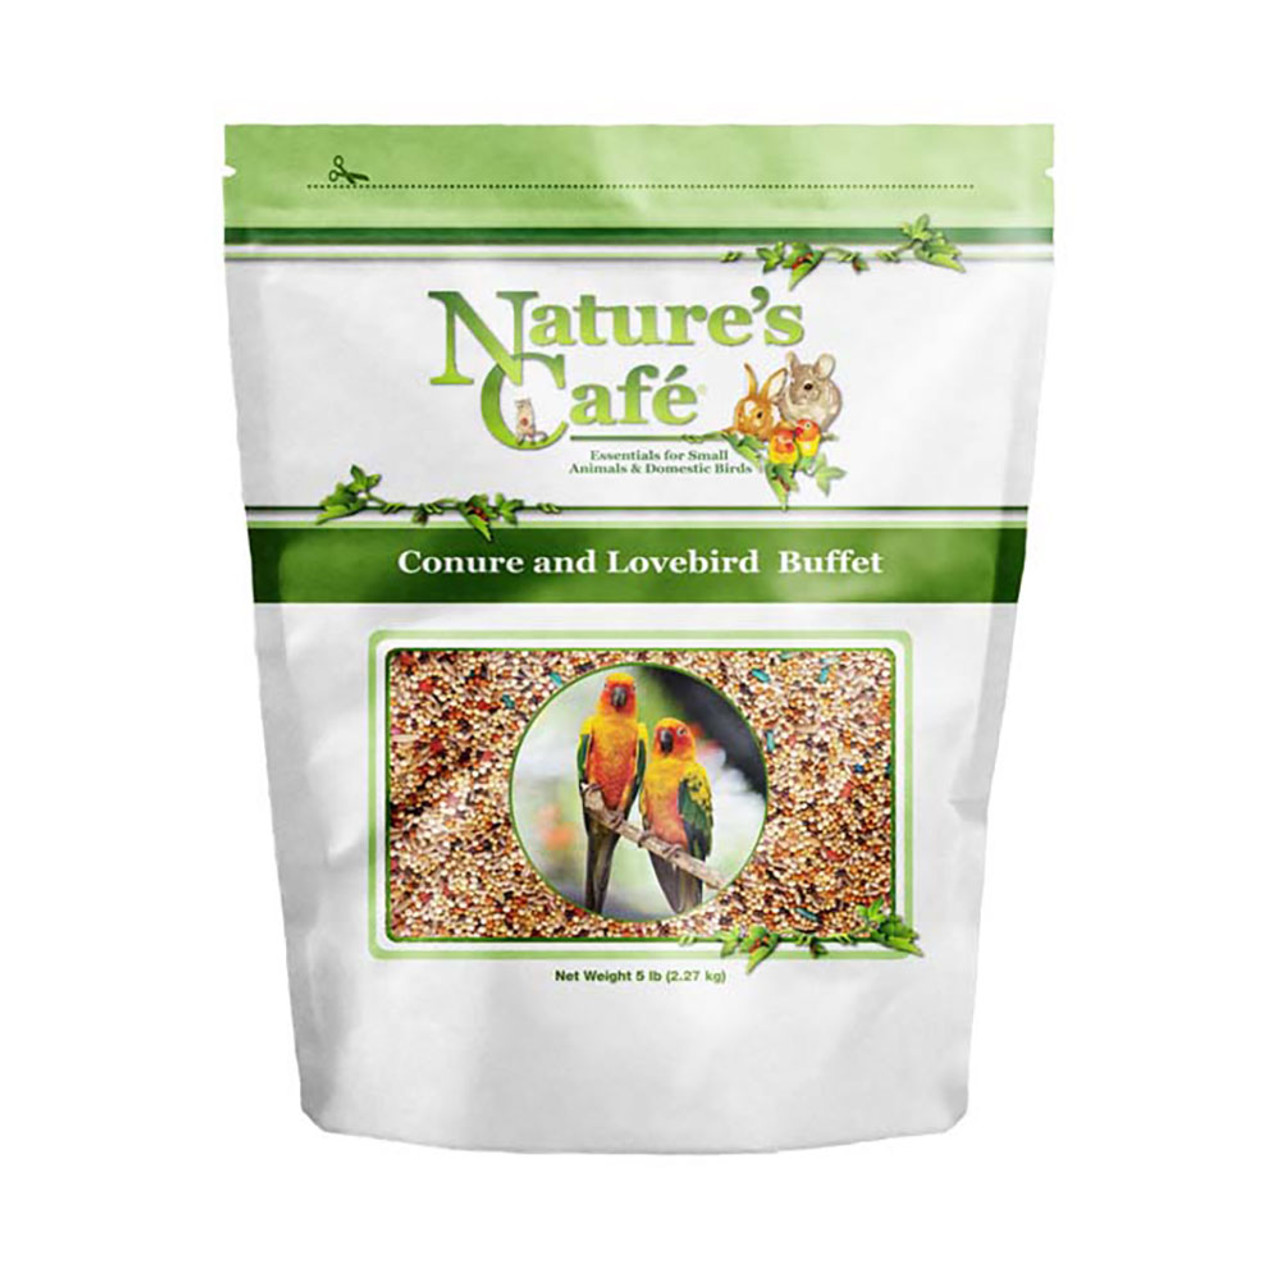 Nature's Cafe Conure & Lovebird Buffet Bird Food